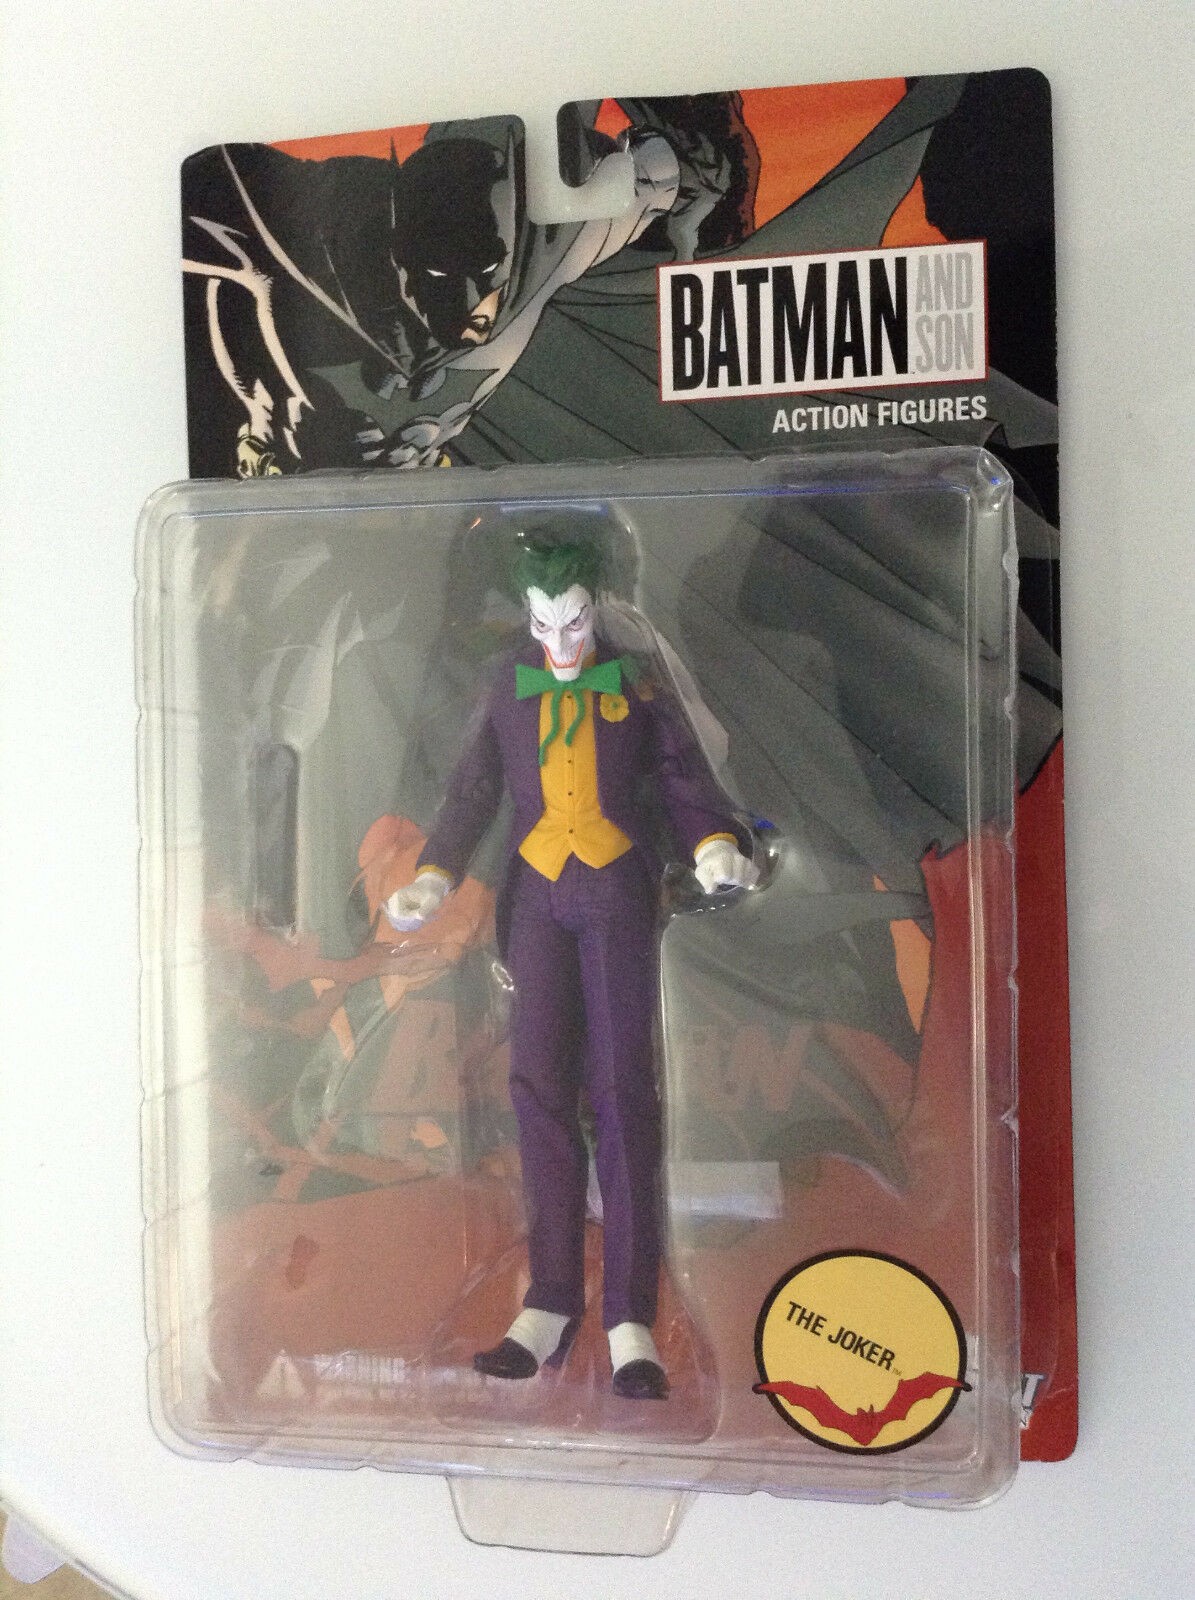 BATMAN AND SON THE JOKER ACTION FIGURE DC DIRECT DIRECT DIRECT NEW(52 REBIRTH STATUE DAMIAN 13 db6db3